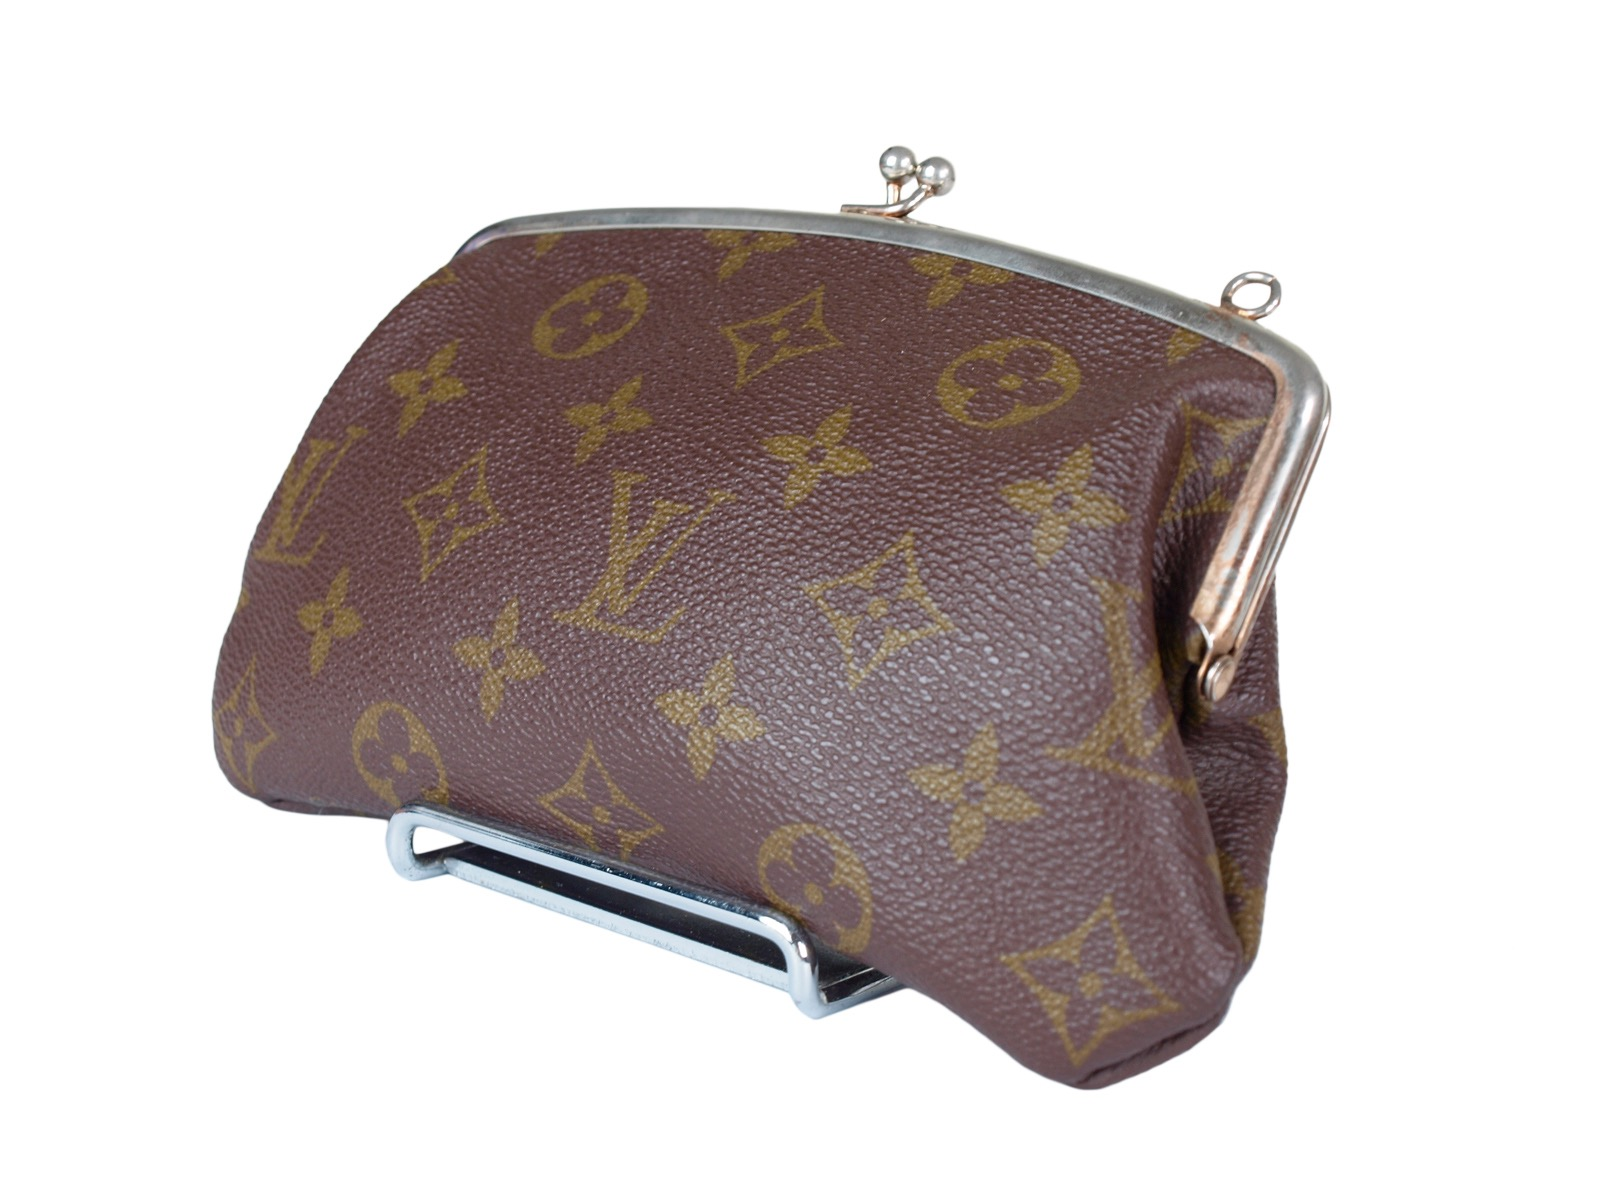 -Louis Vuitton- ルイヴィトン Monogram Canvas Accessories Purse Metal Clasp モノグラム がま口 クラッチ バッグ 化粧 ポーチ サブバッグ【レア】【中古】